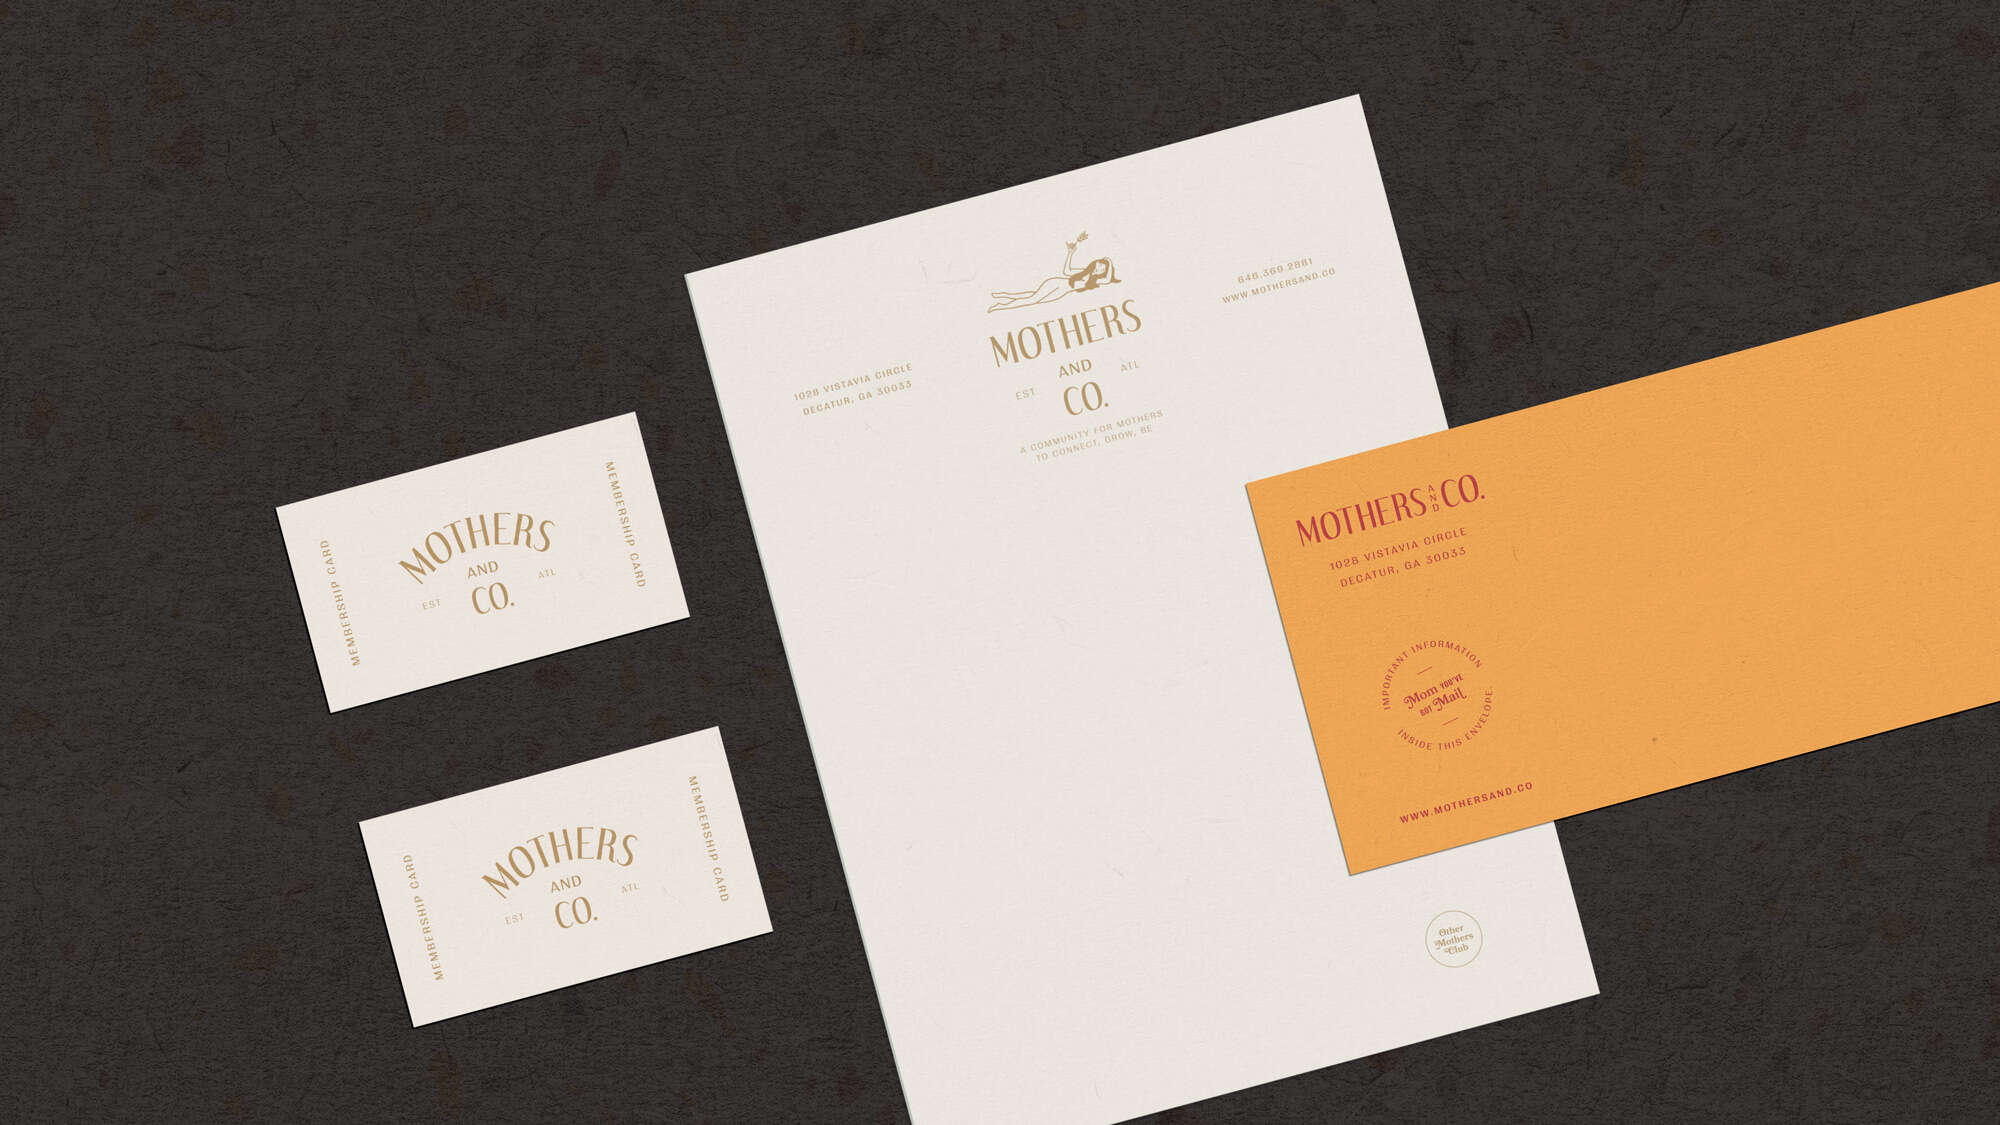 &_casestudies-mo&co-stationery4